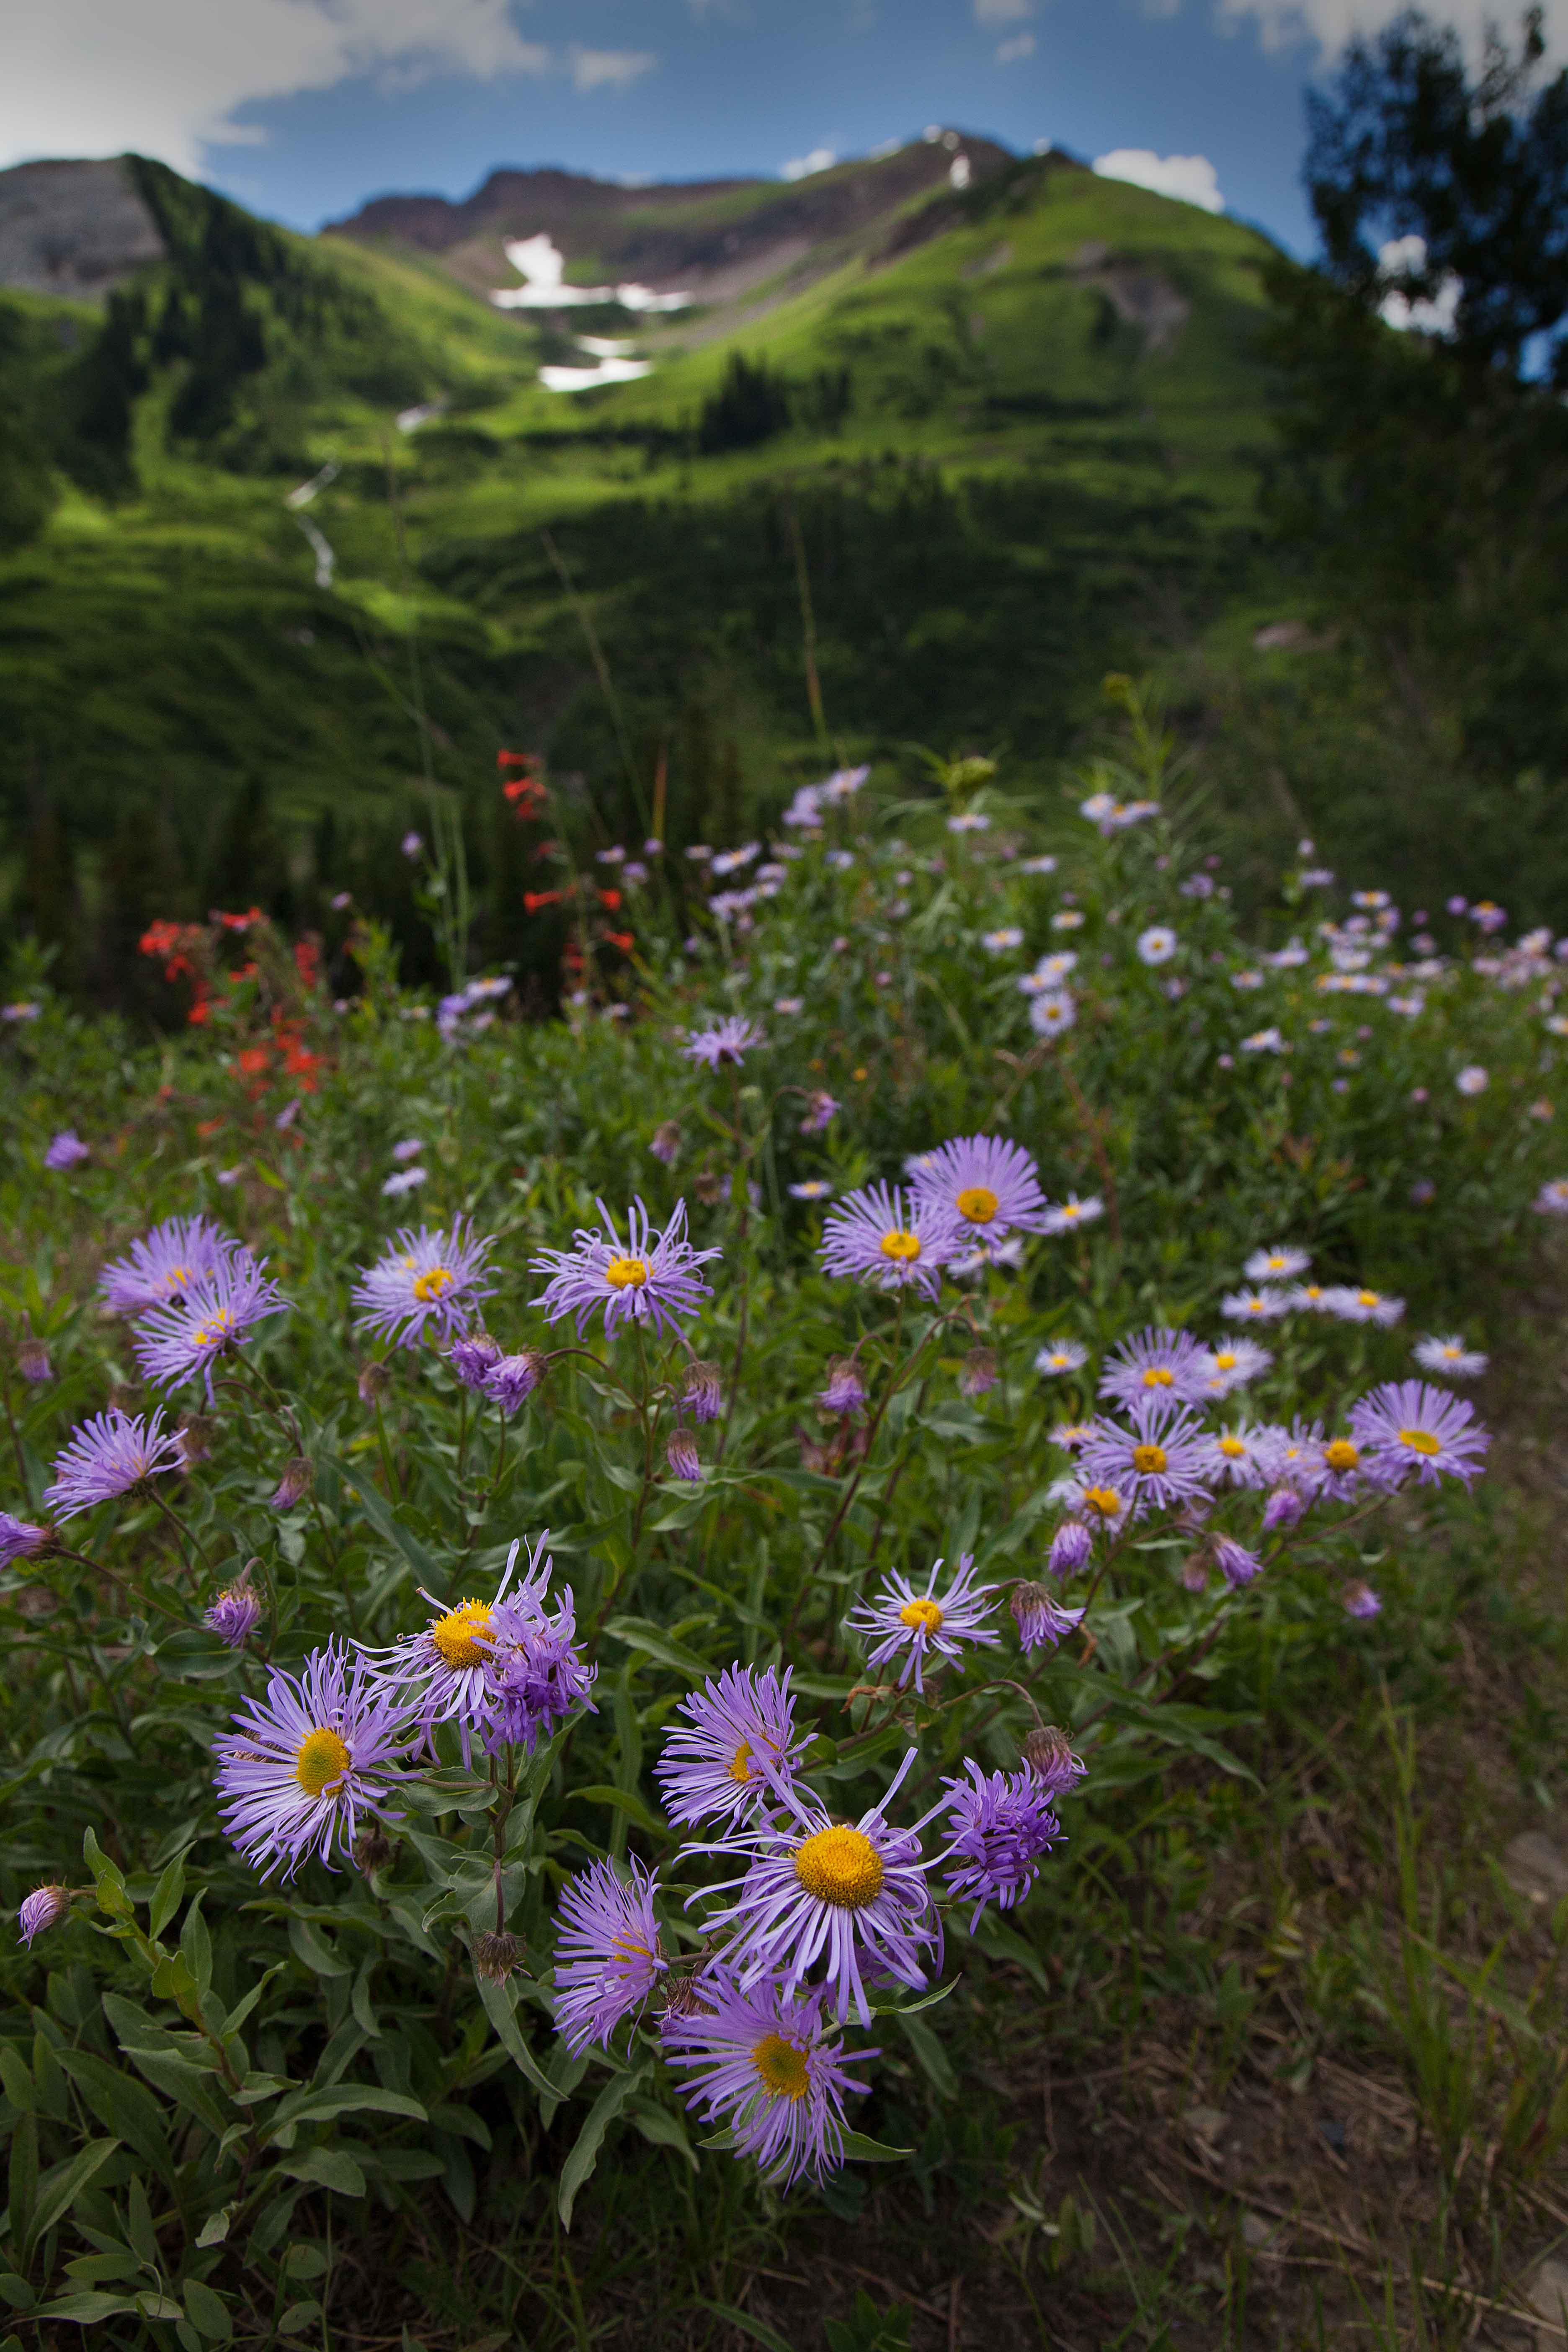 Wildflowers along the East River on the Gunnison National Forest in the Colorado Rocky Mts.